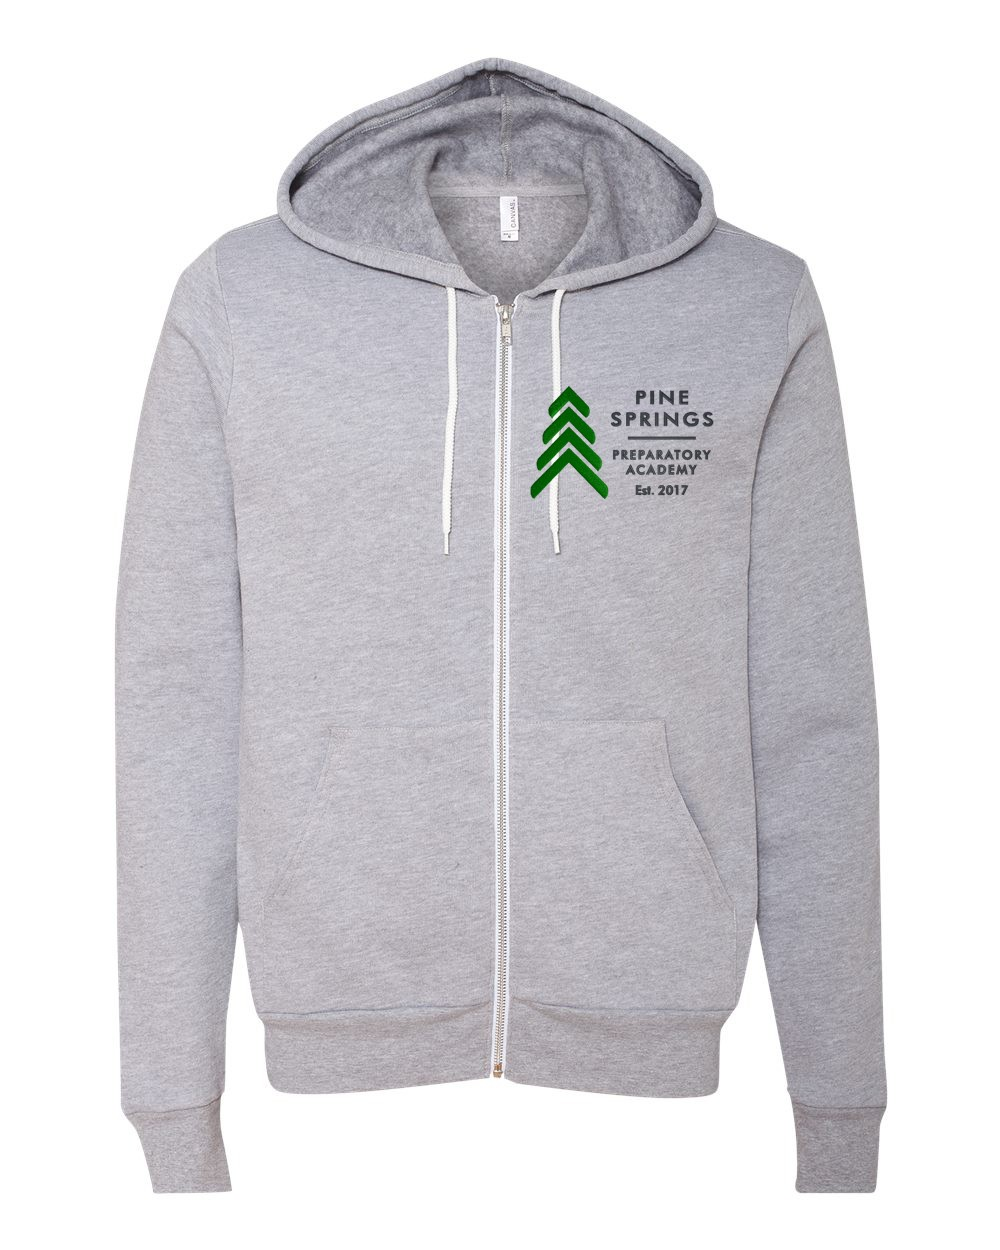 Pine Springs Soft Spun Cotton Zip Up Embroidered Hoodies